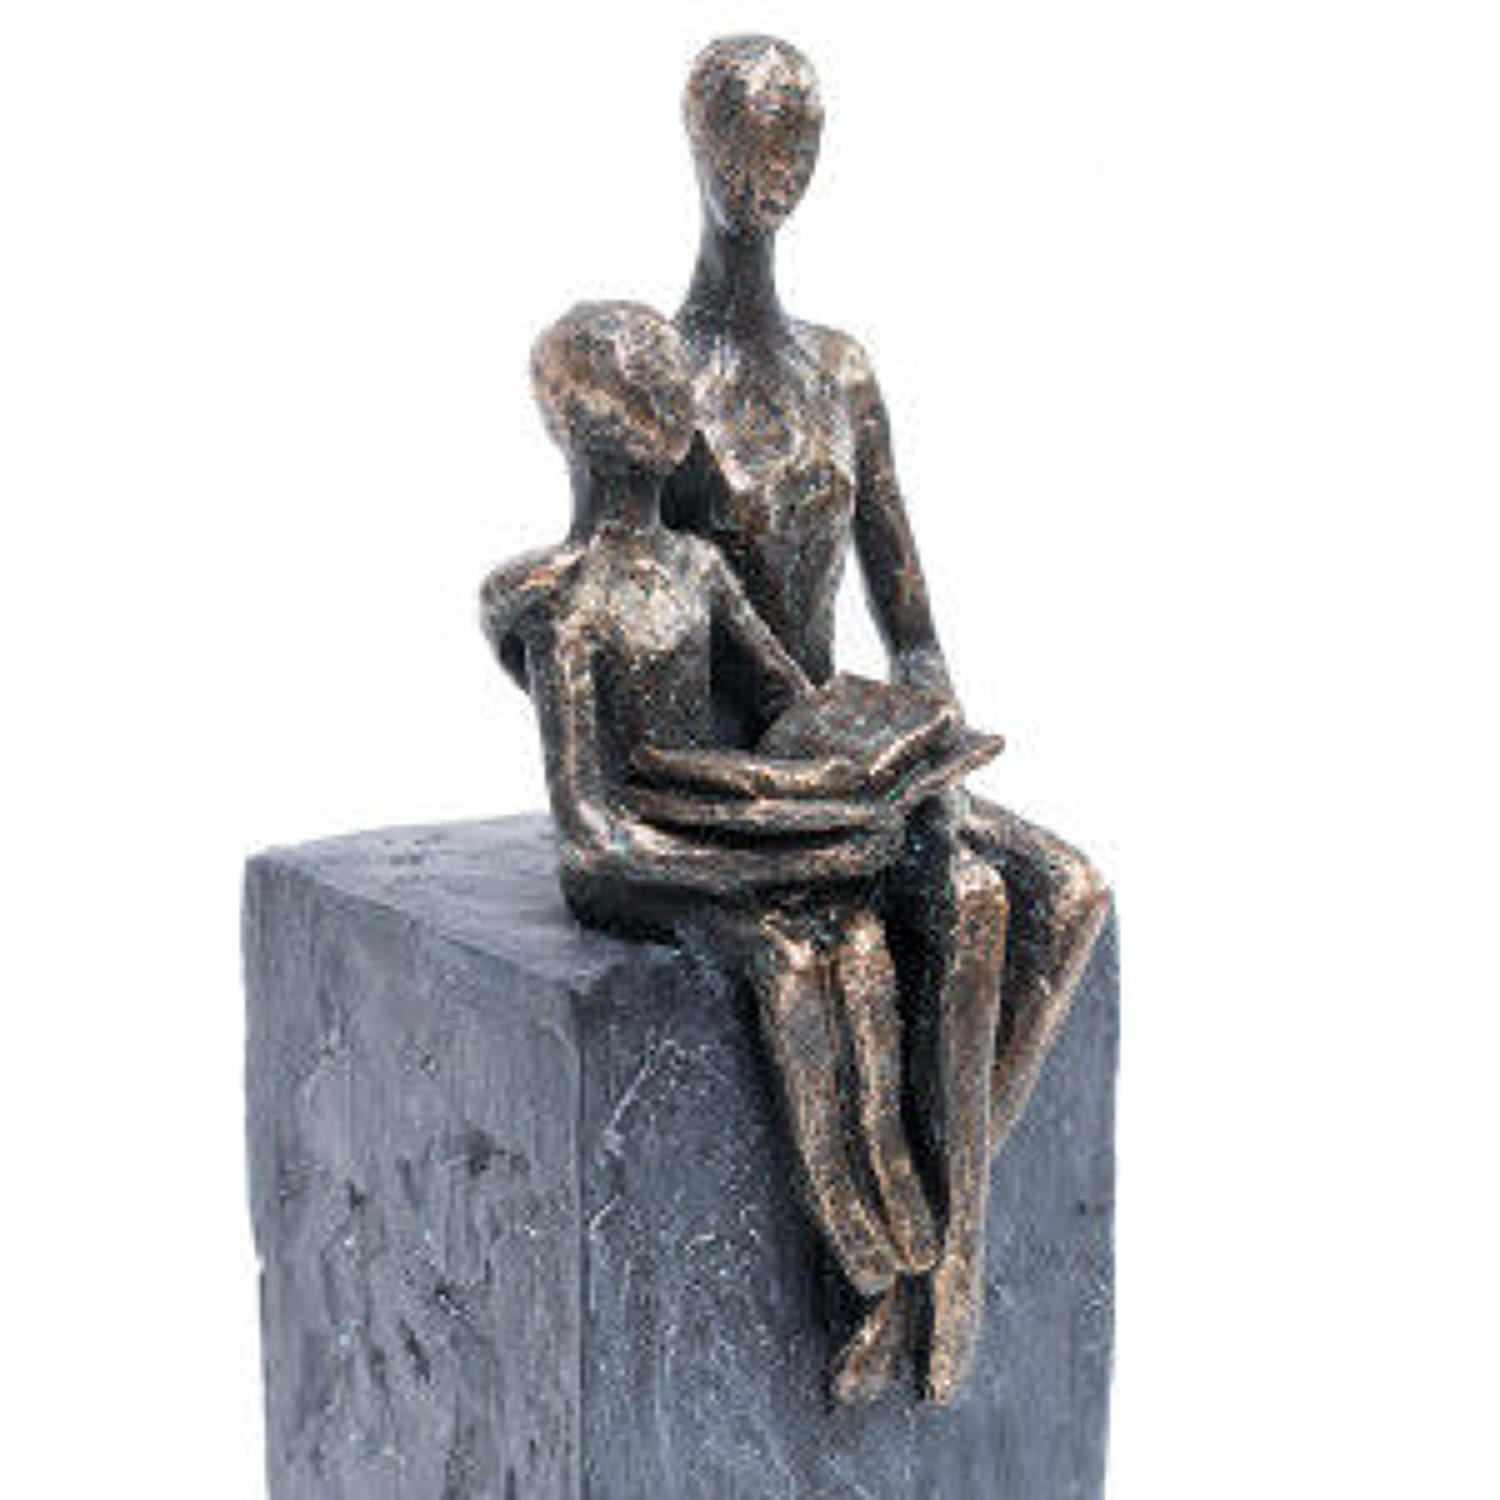 Mother and child reading sculpture